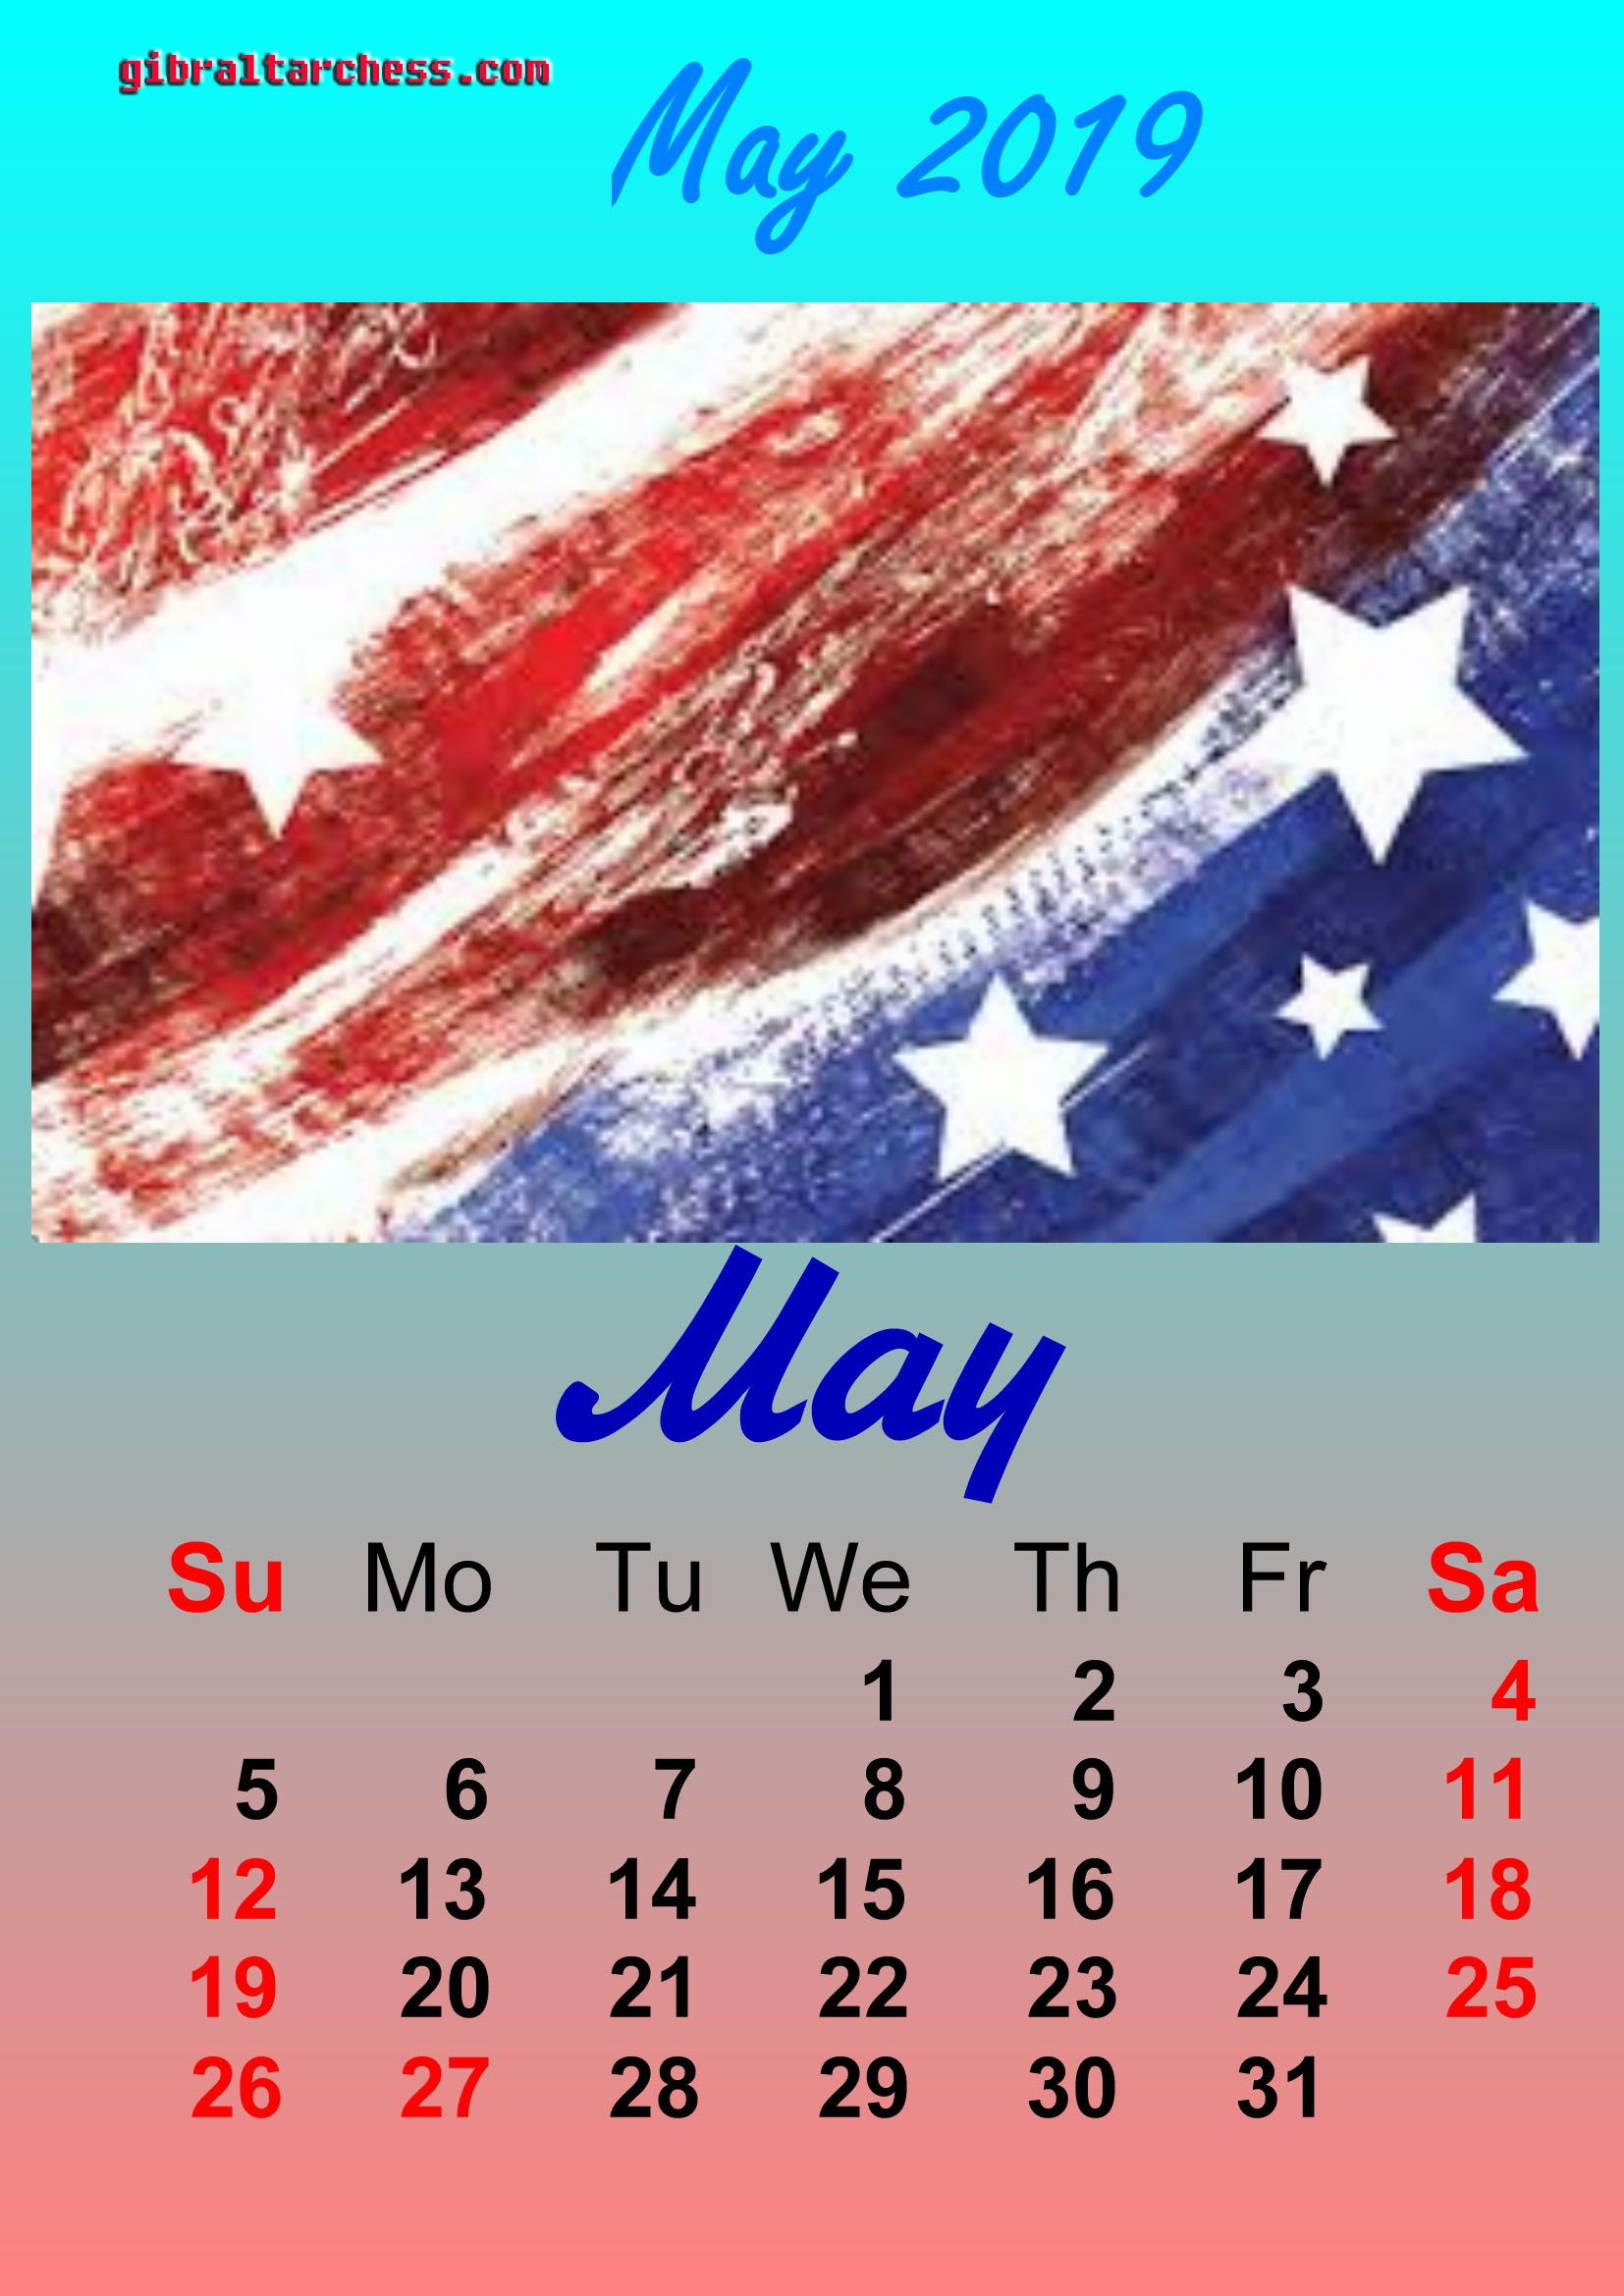 May 2019 Calendar Memorial Day 2 May 2019 Holidays Calendar Memorial Day | Calendar Template